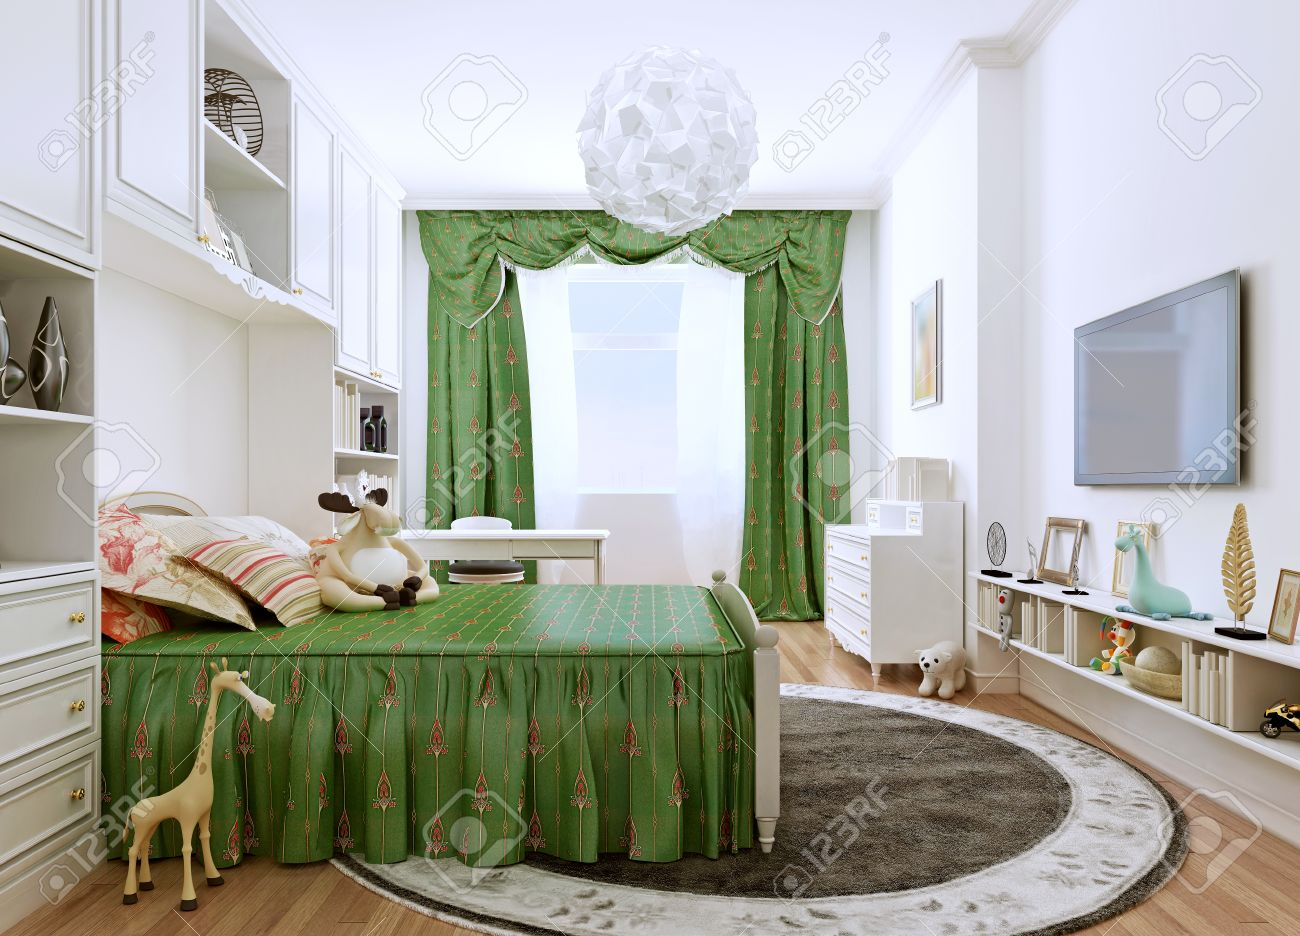 Jugendzimmer Farbe Stock Photo